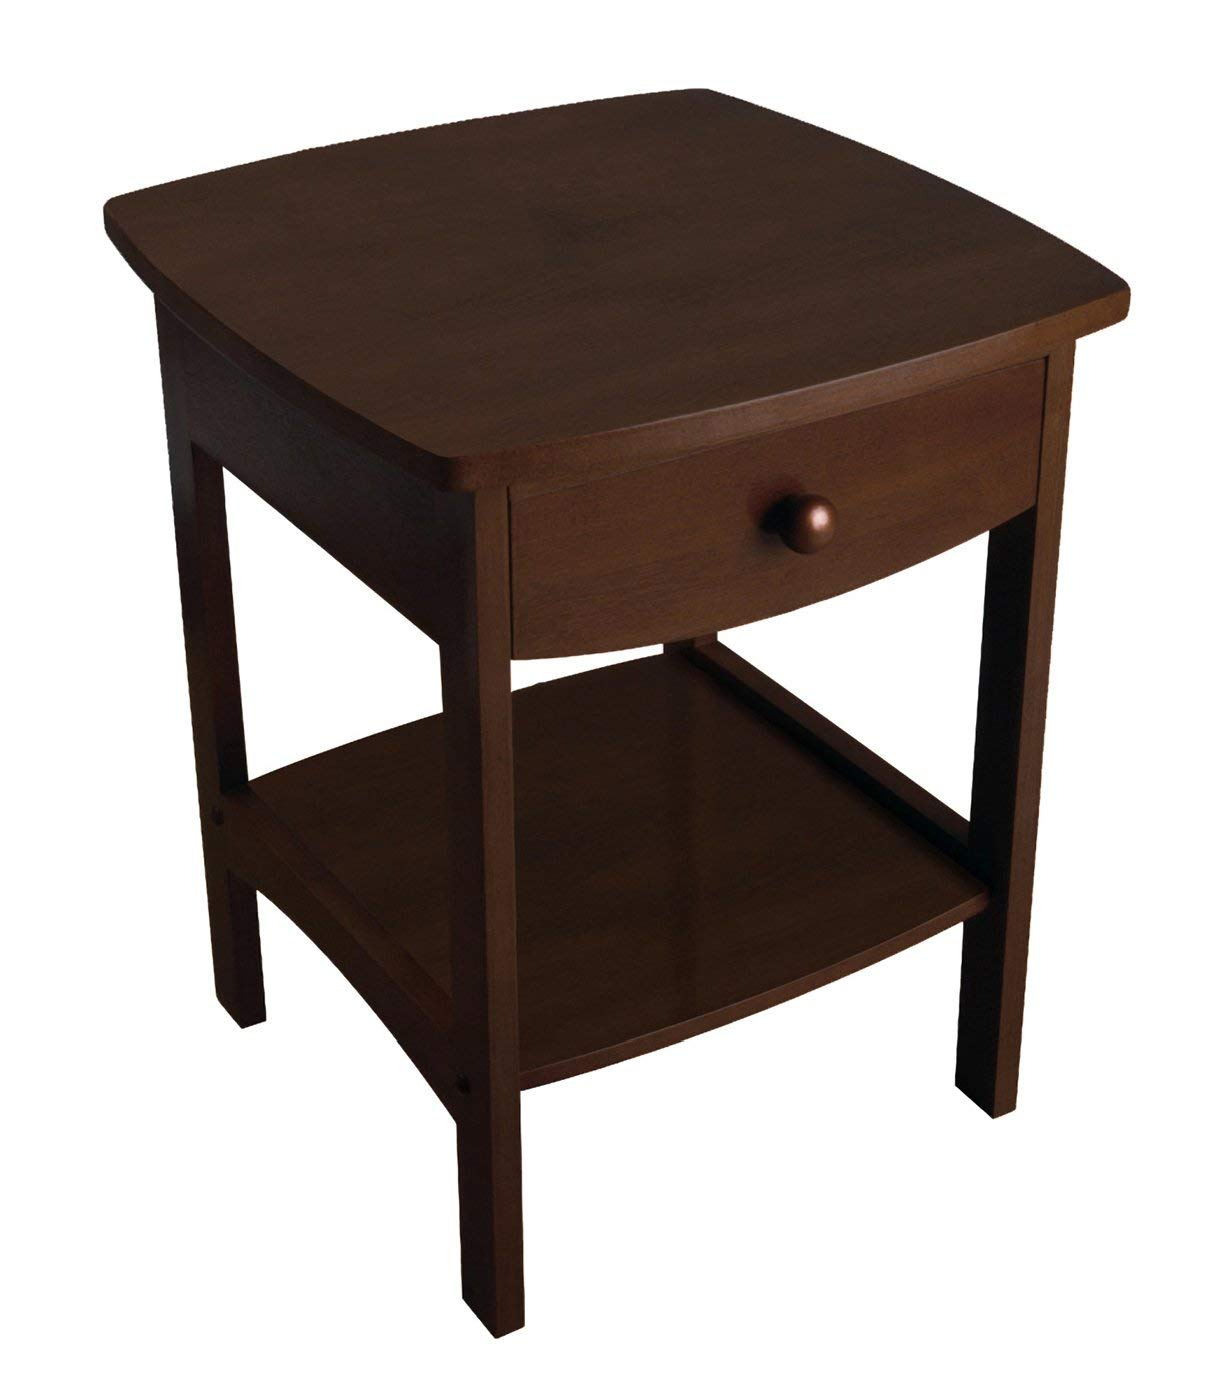 winsome wood claire accent table walnut kitchen eugene espresso dining seagrass coffee end with usb charger marble gold legs retro industrial side vintage height telephone and